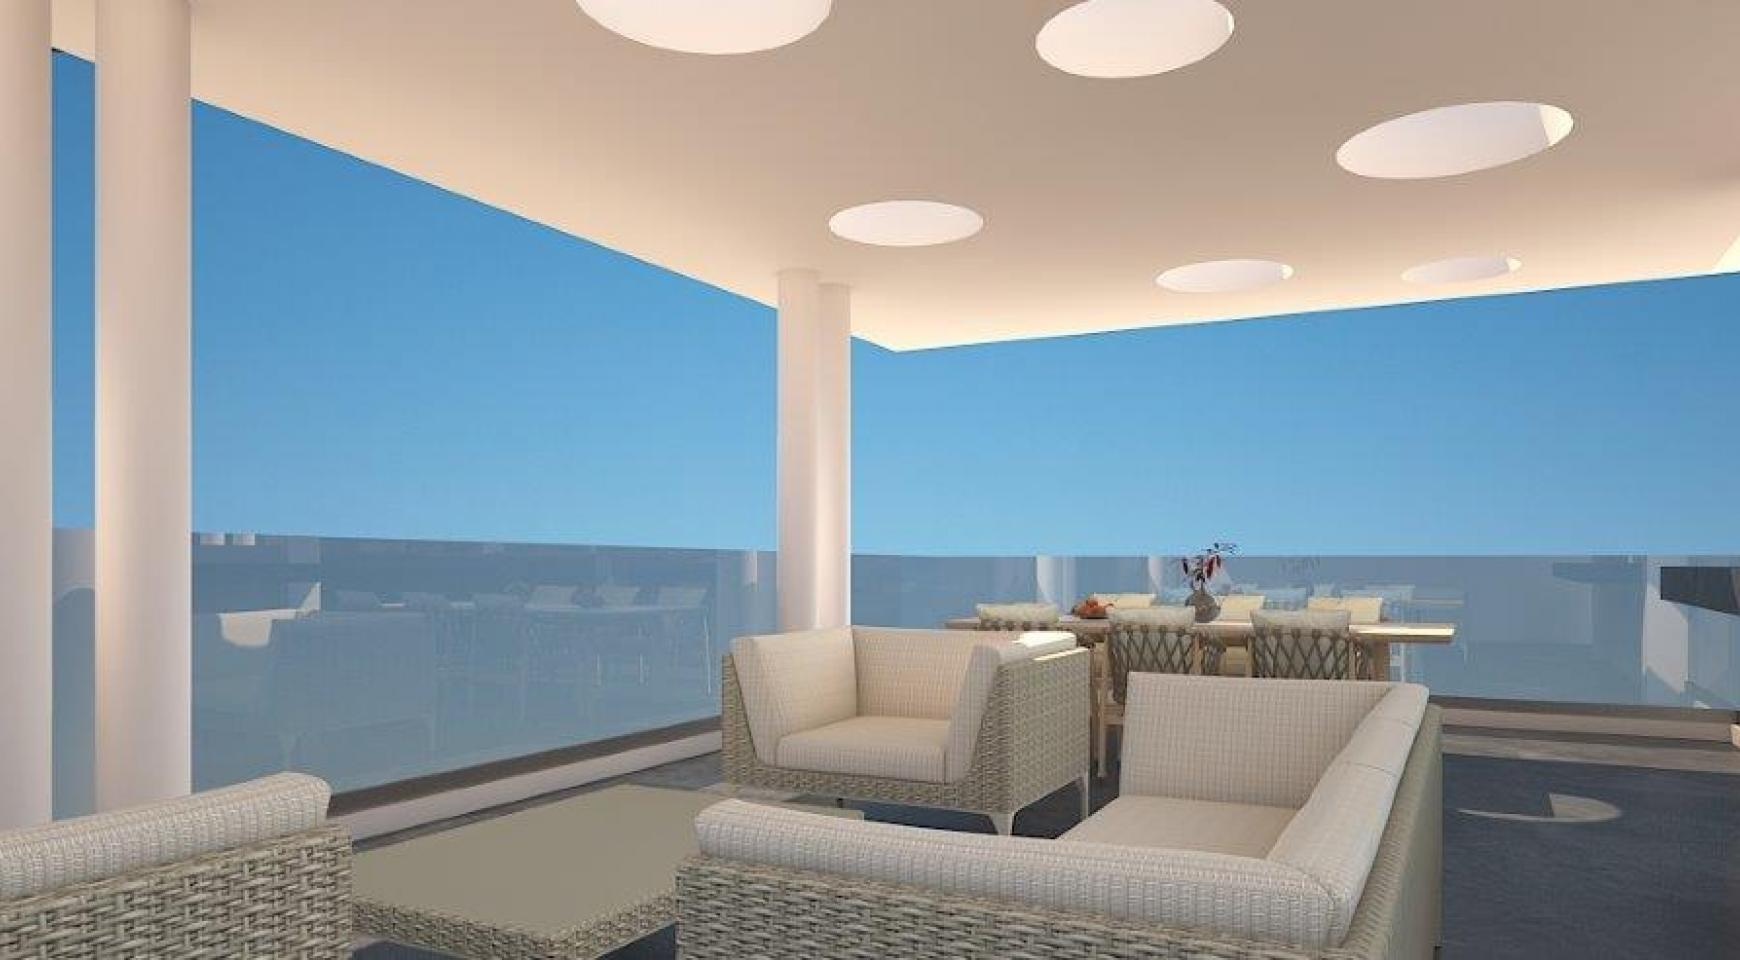 Modern 3 Bedroom Penthouse in a New Building in the City Centre - 2